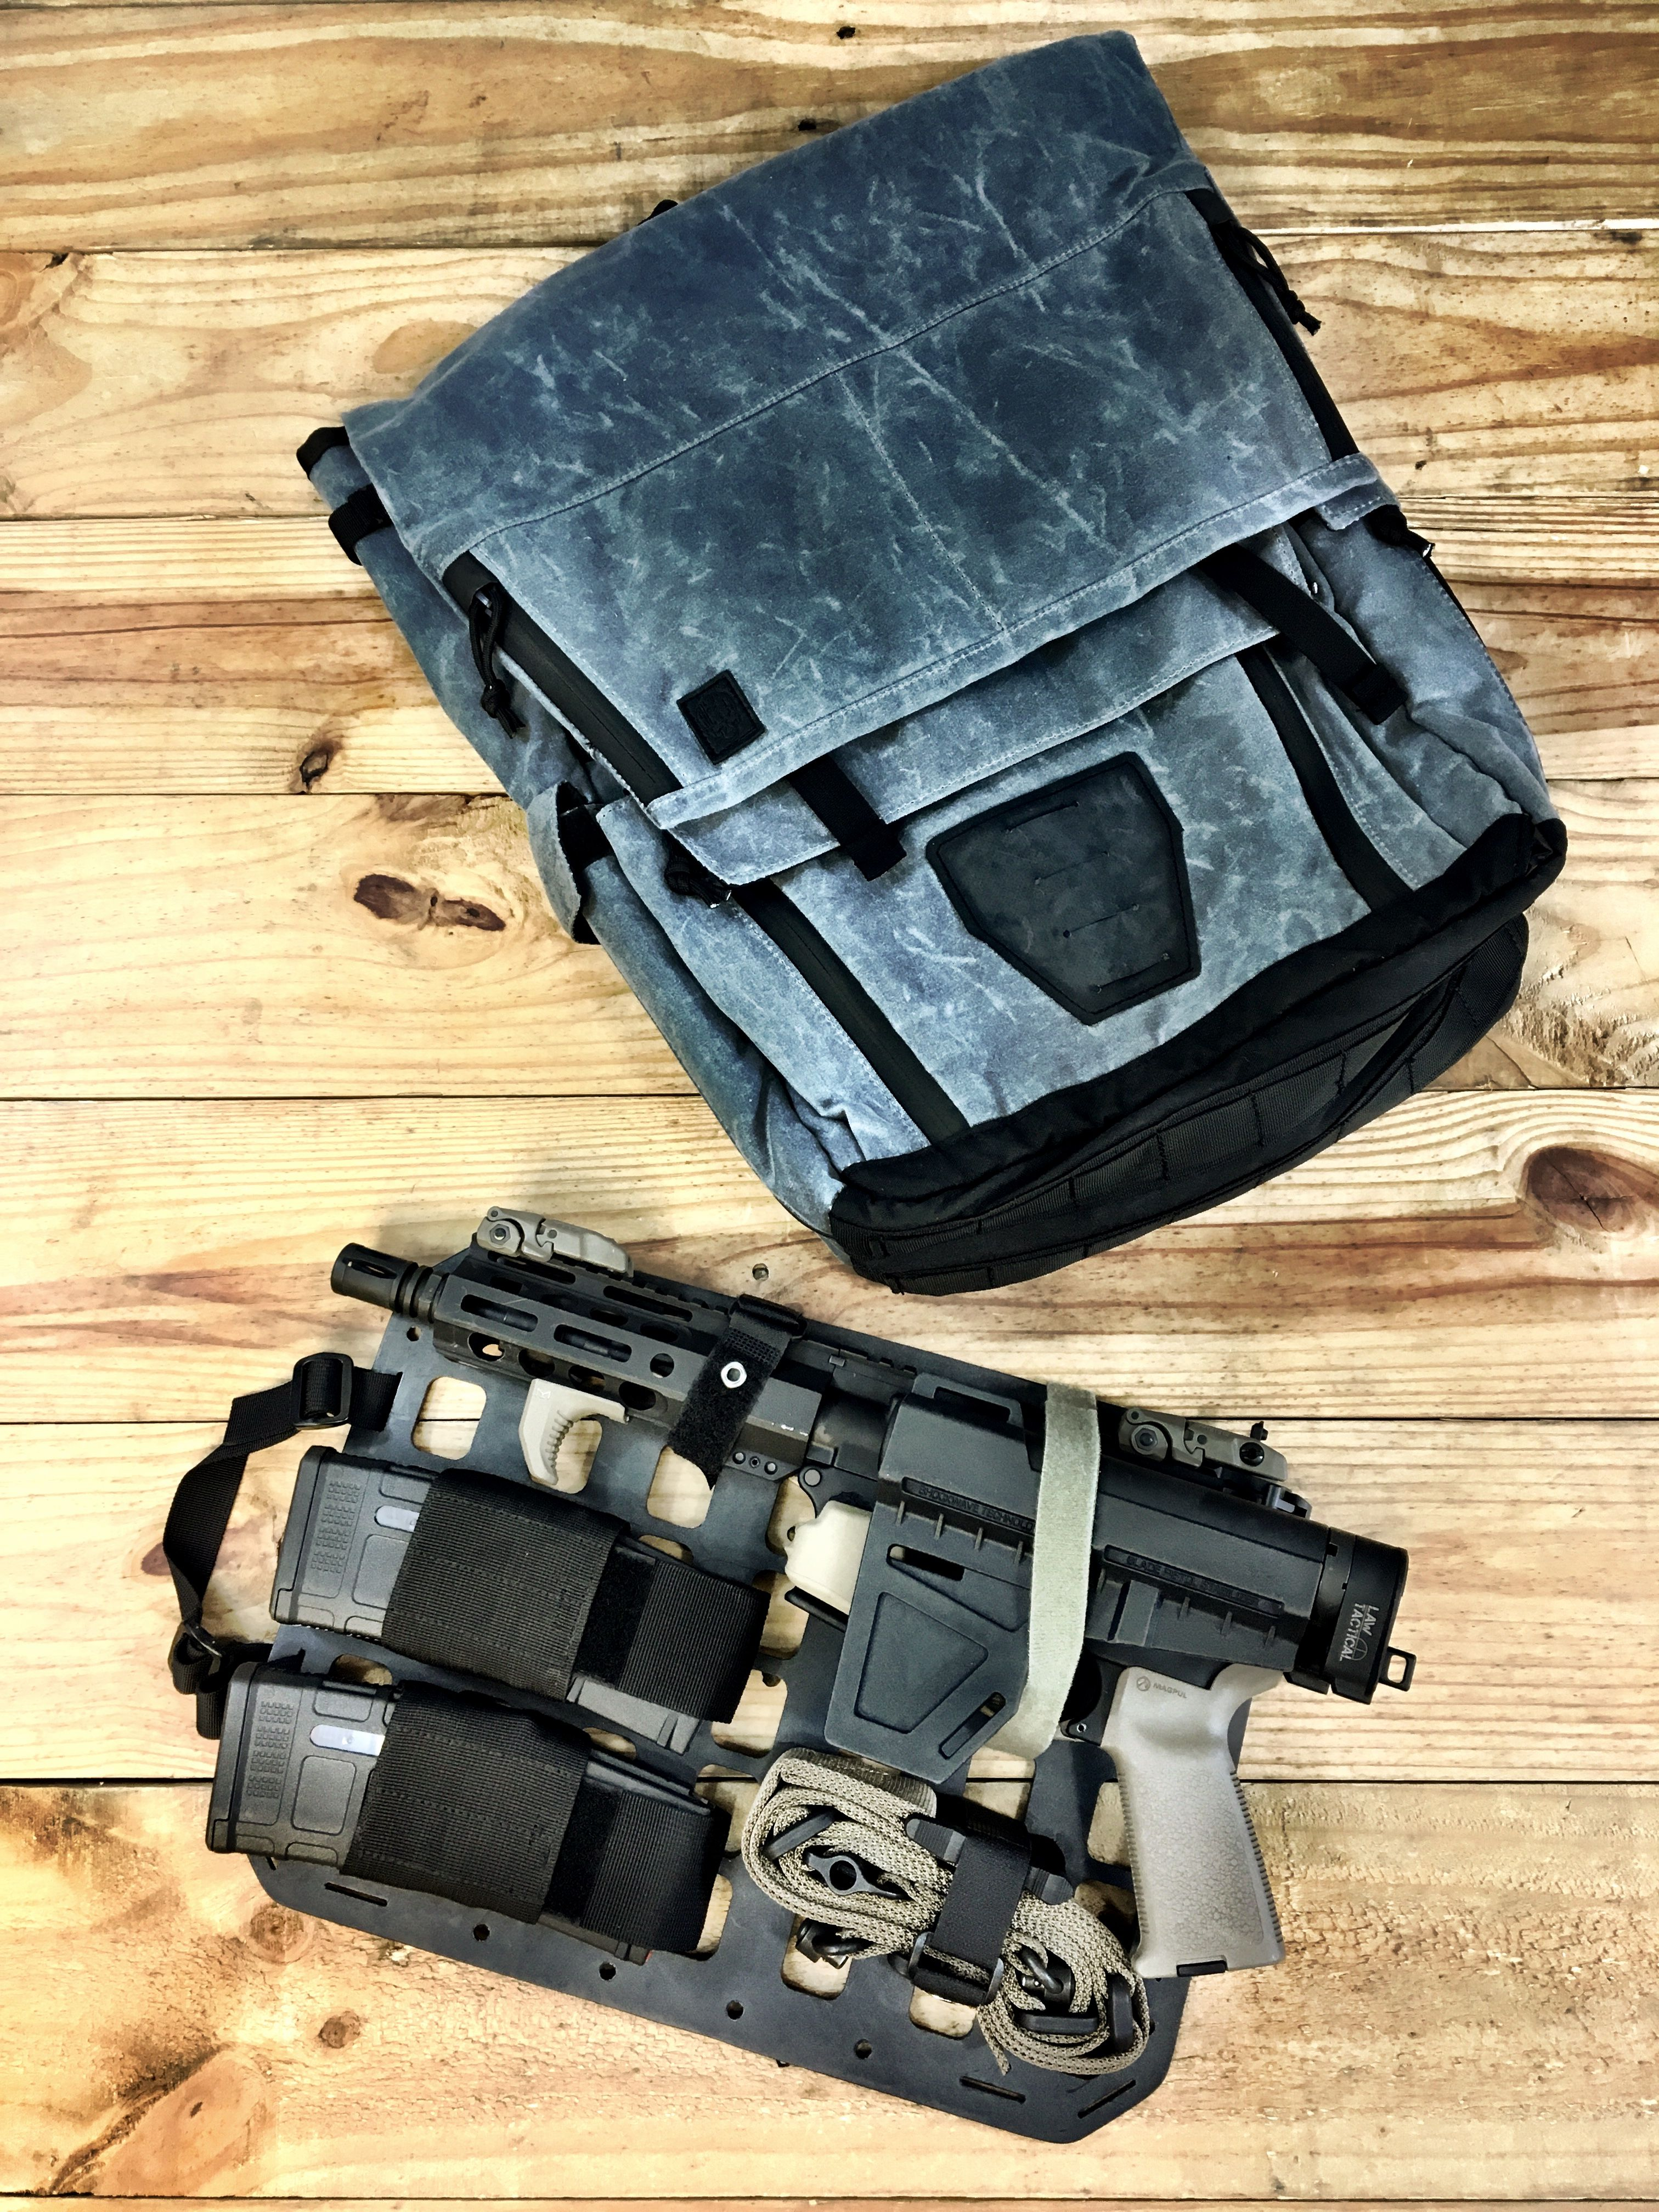 e07ae3045f Grey Ghost Concealed Carry Pack in Waxed Canvas and Grey Man Tactical Rigid  Insert Panel-MOLLE. Find this Pin and more on Covert Bags ...